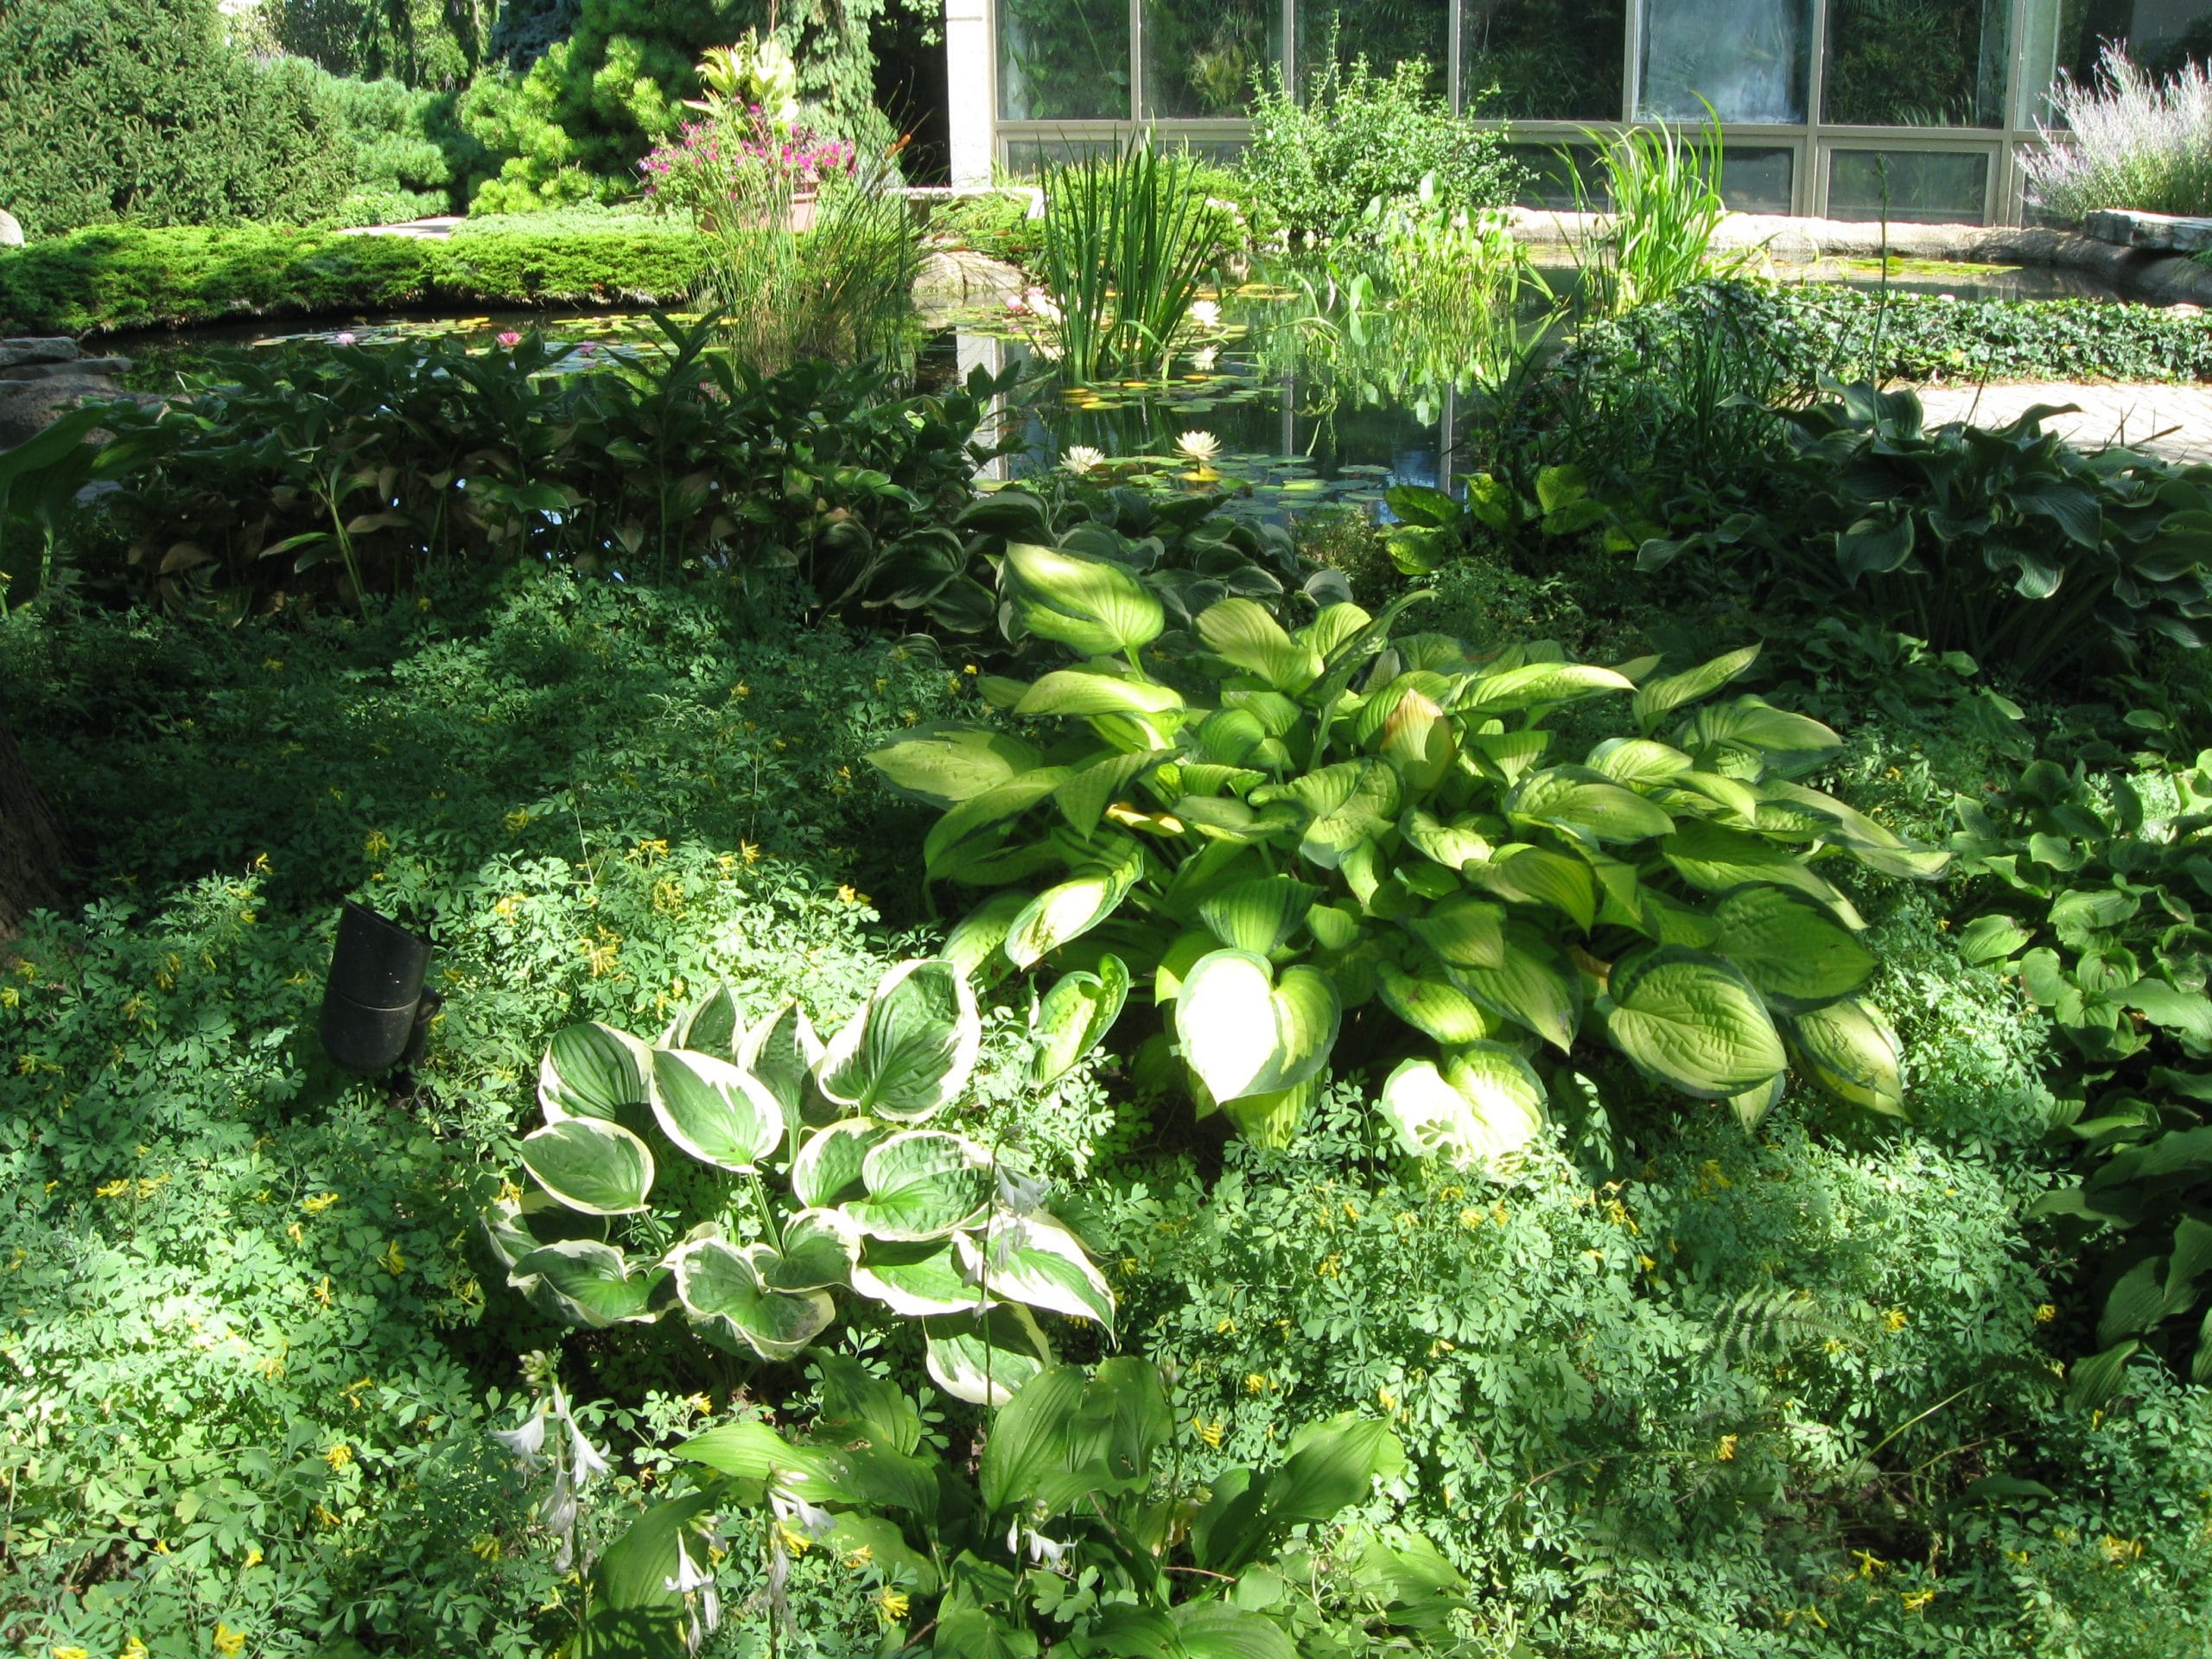 Hosta Garden and Outdoor Goldfish Pond at the Quad City Botanical Center by FlowerChick.com